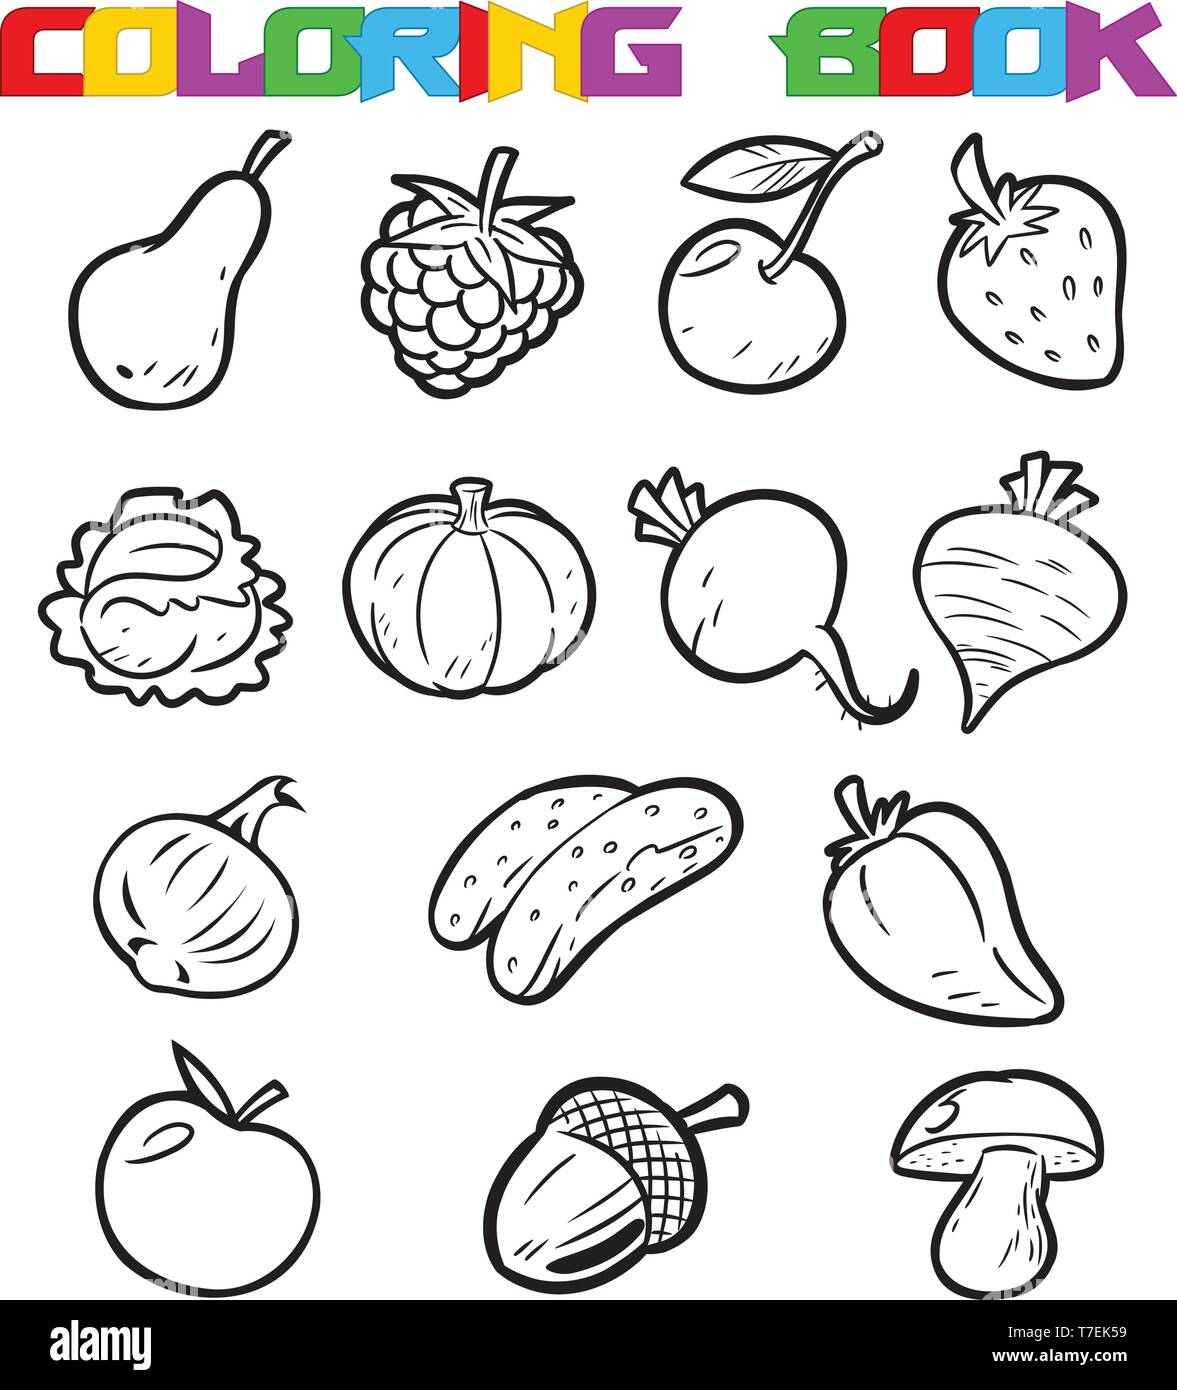 Fruits Vegetables Coloring Book Stock Photos Fruits Vegetables